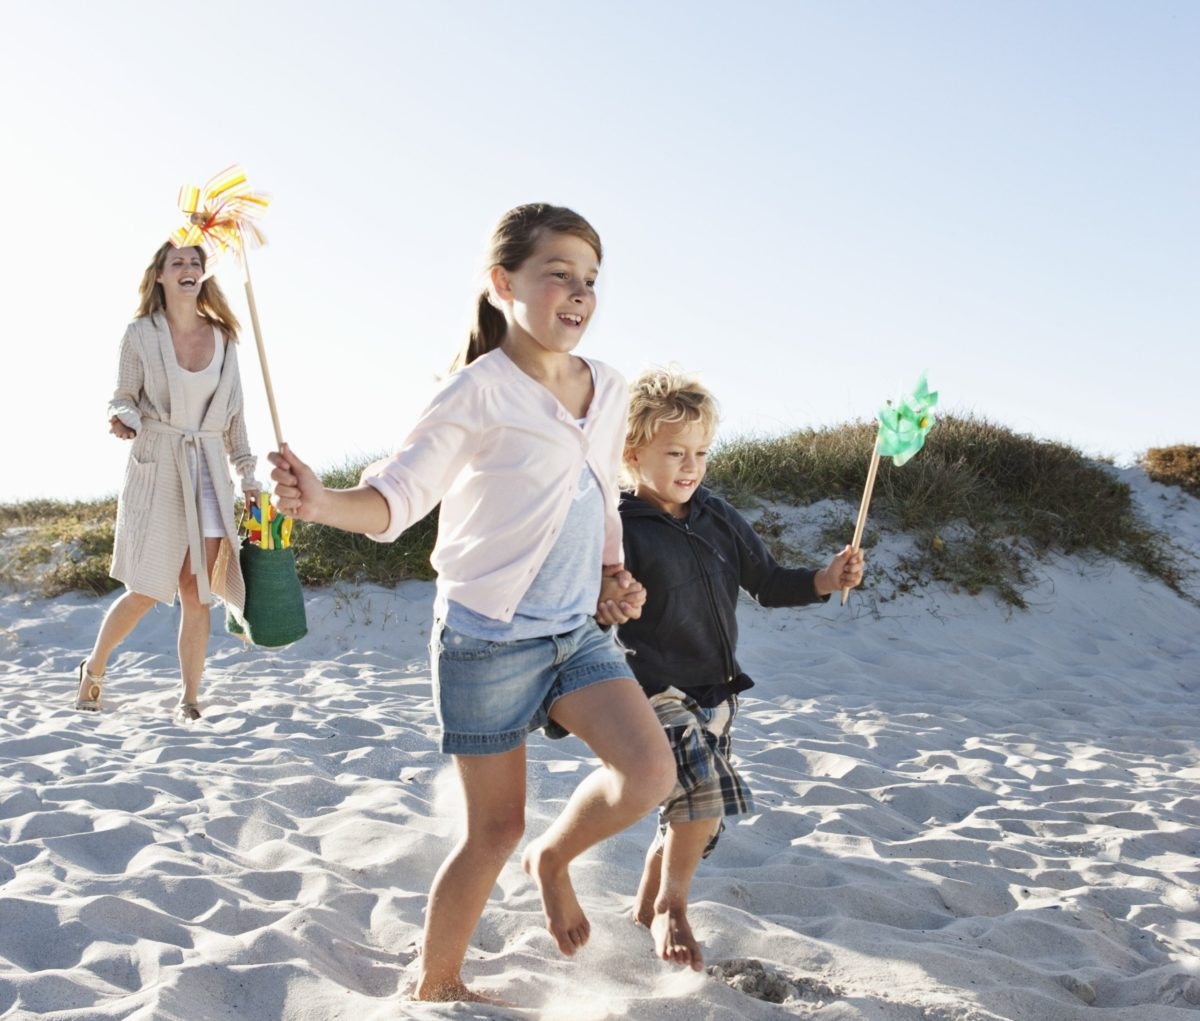 Boy (7-9) and girl (10-12) with mother running on sand dune and holding pinwheel --- Image by © Felix Wirth/Corbis